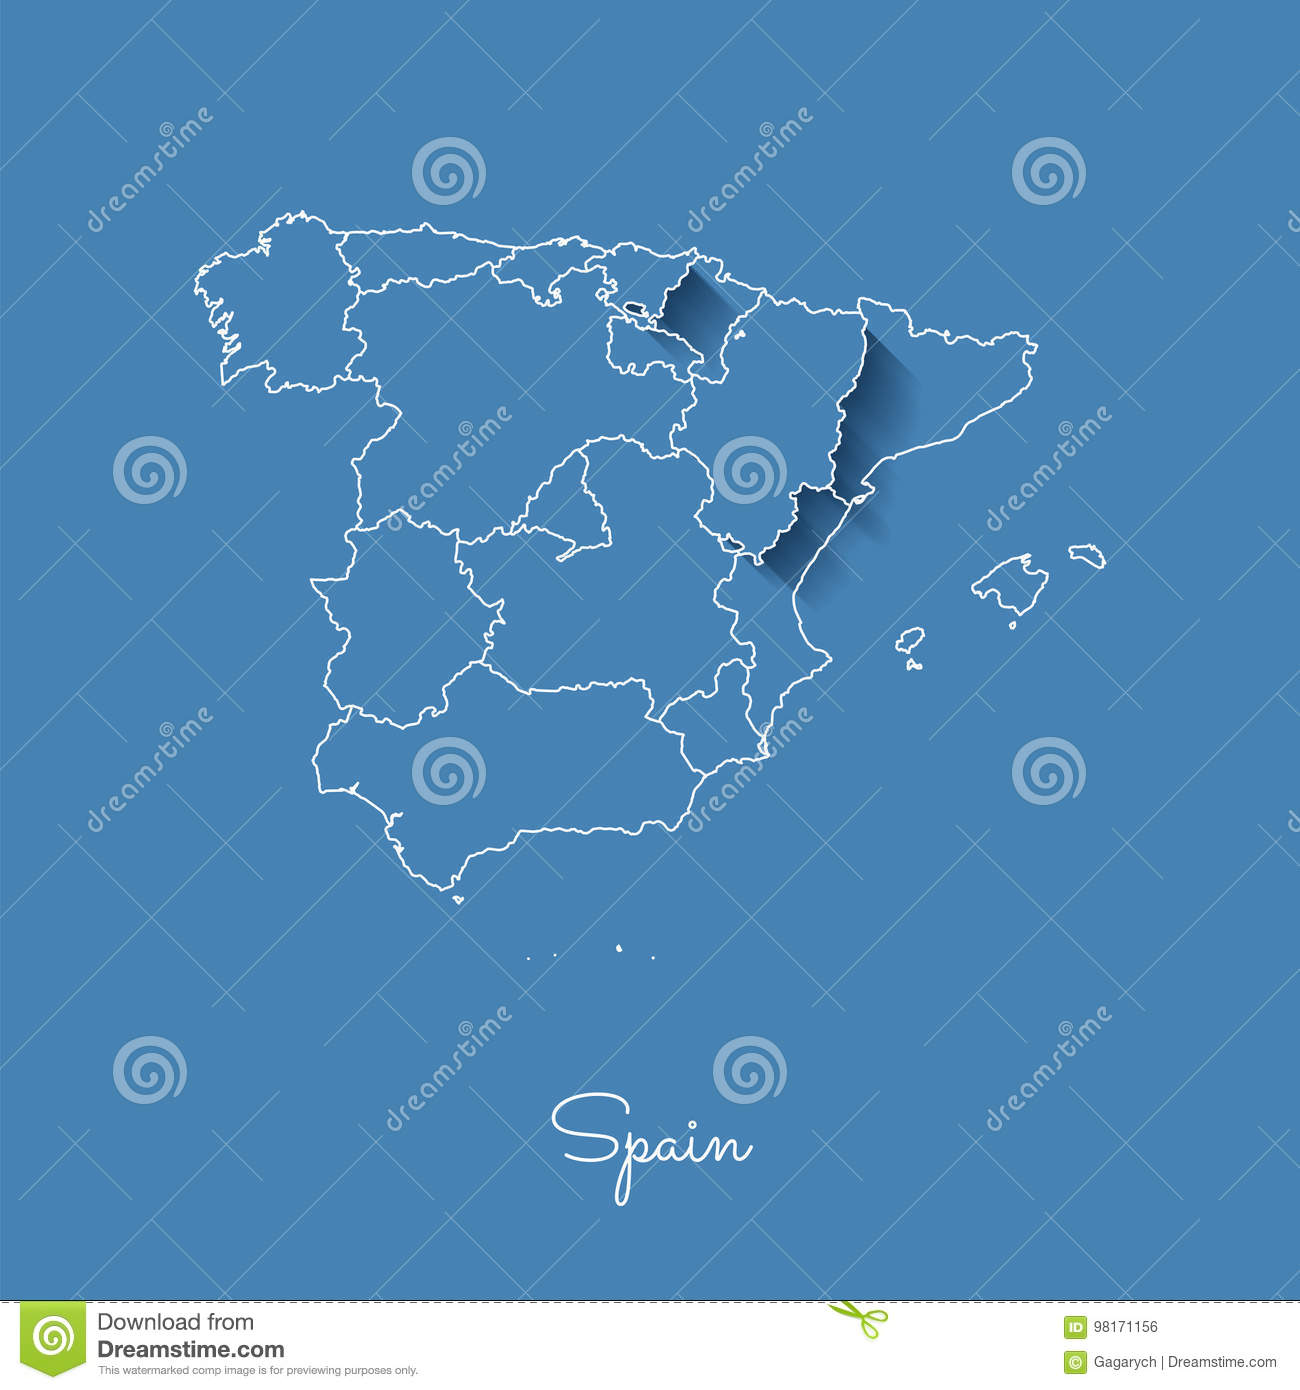 Map Of Spain With Regions.Spain Region Map Blue With White Outline And Stock Vector